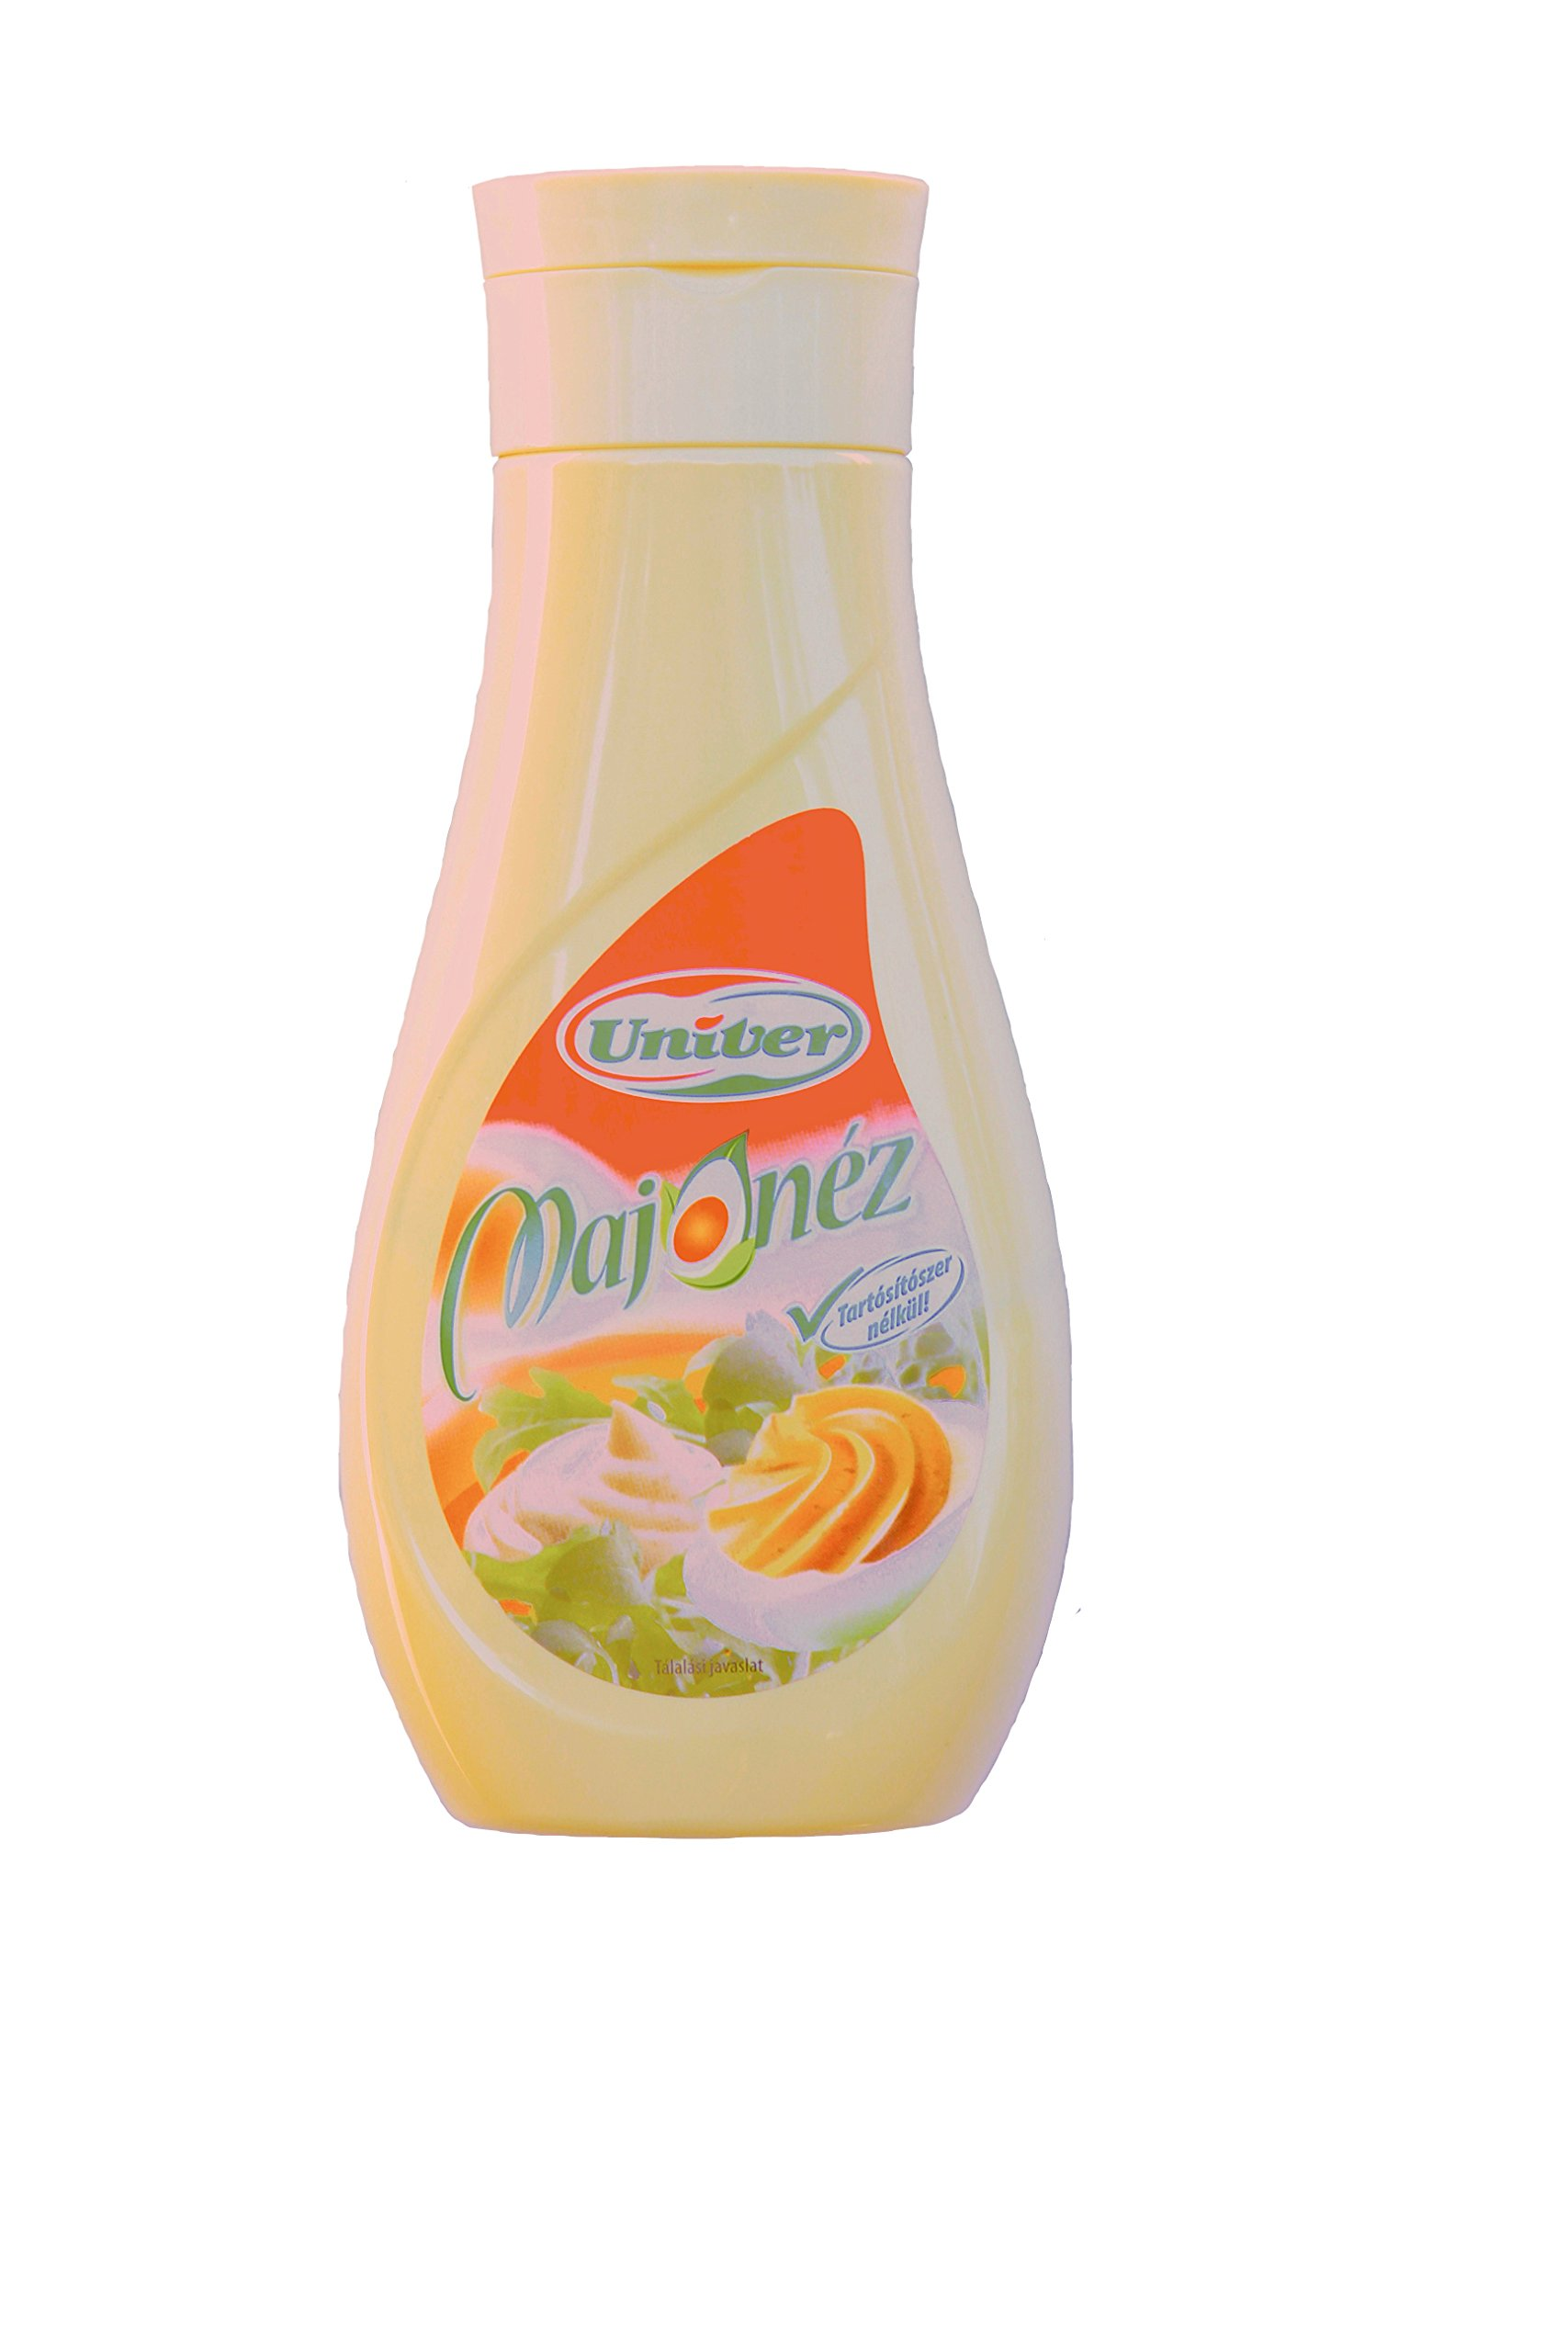 Univer Mayonnaise Squeeze Bottle 420g